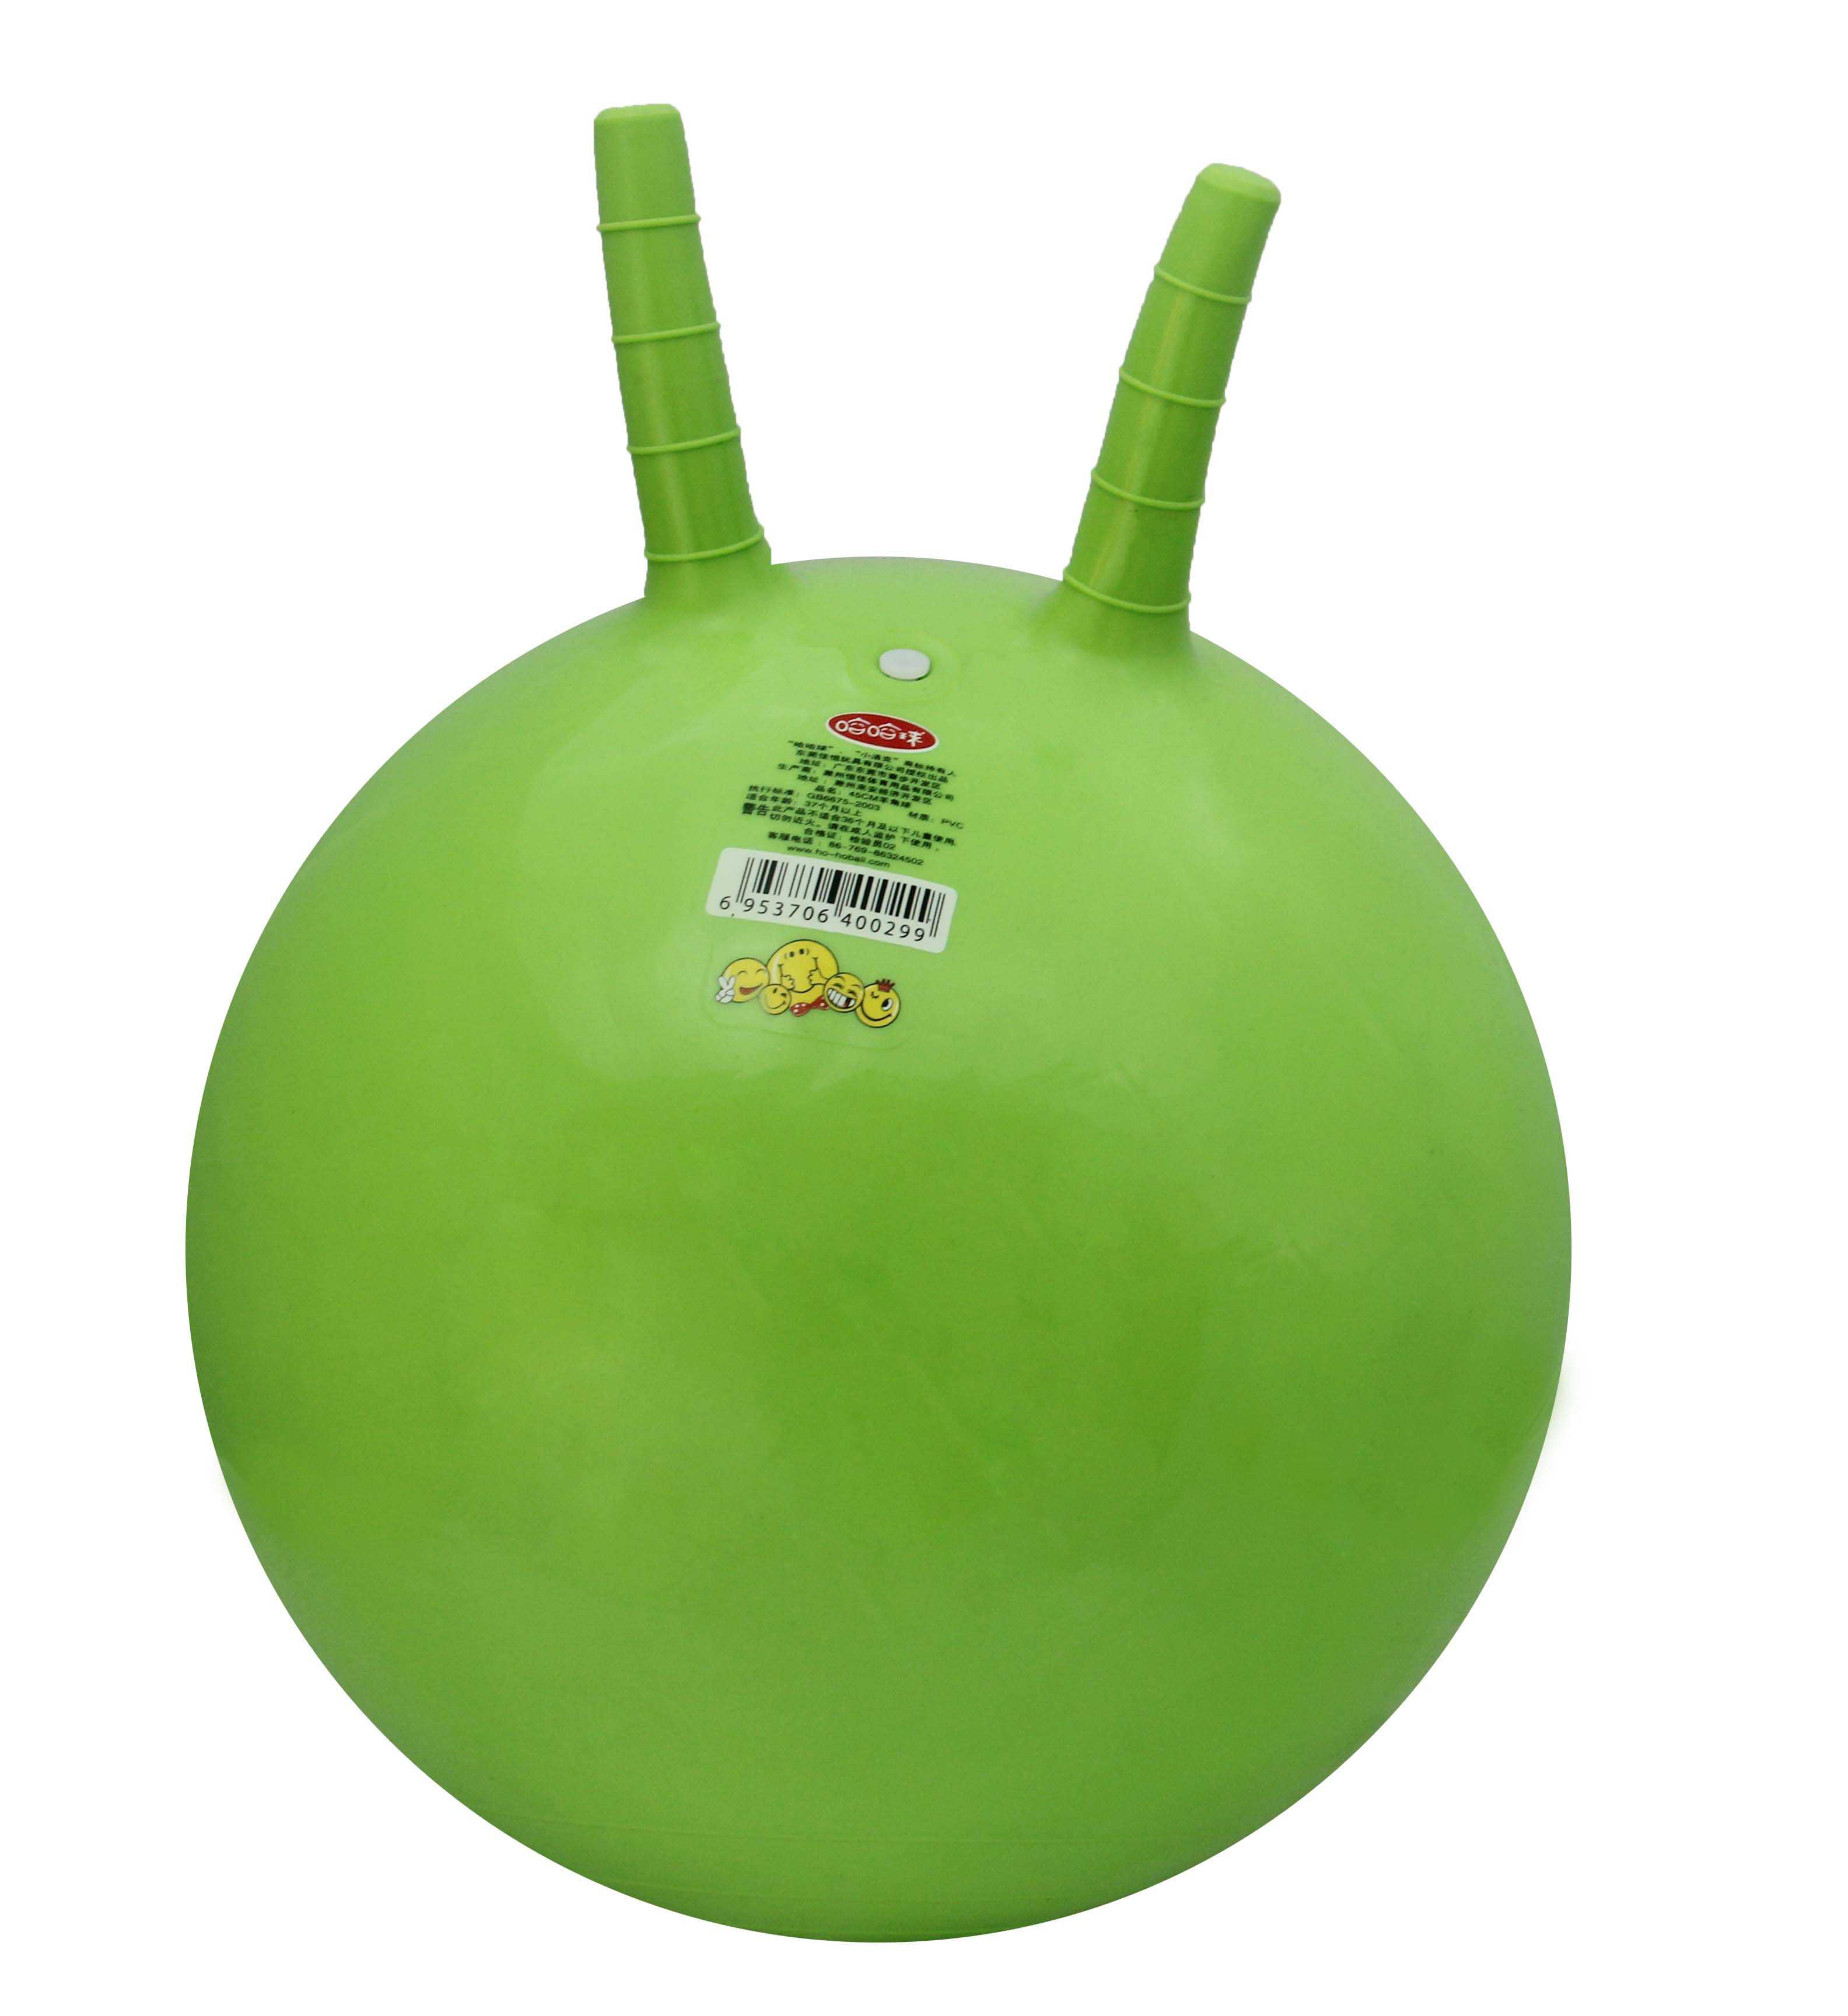 45CM High Quality Durable Hopper Jumping Ball with Ears for Kids & Adult